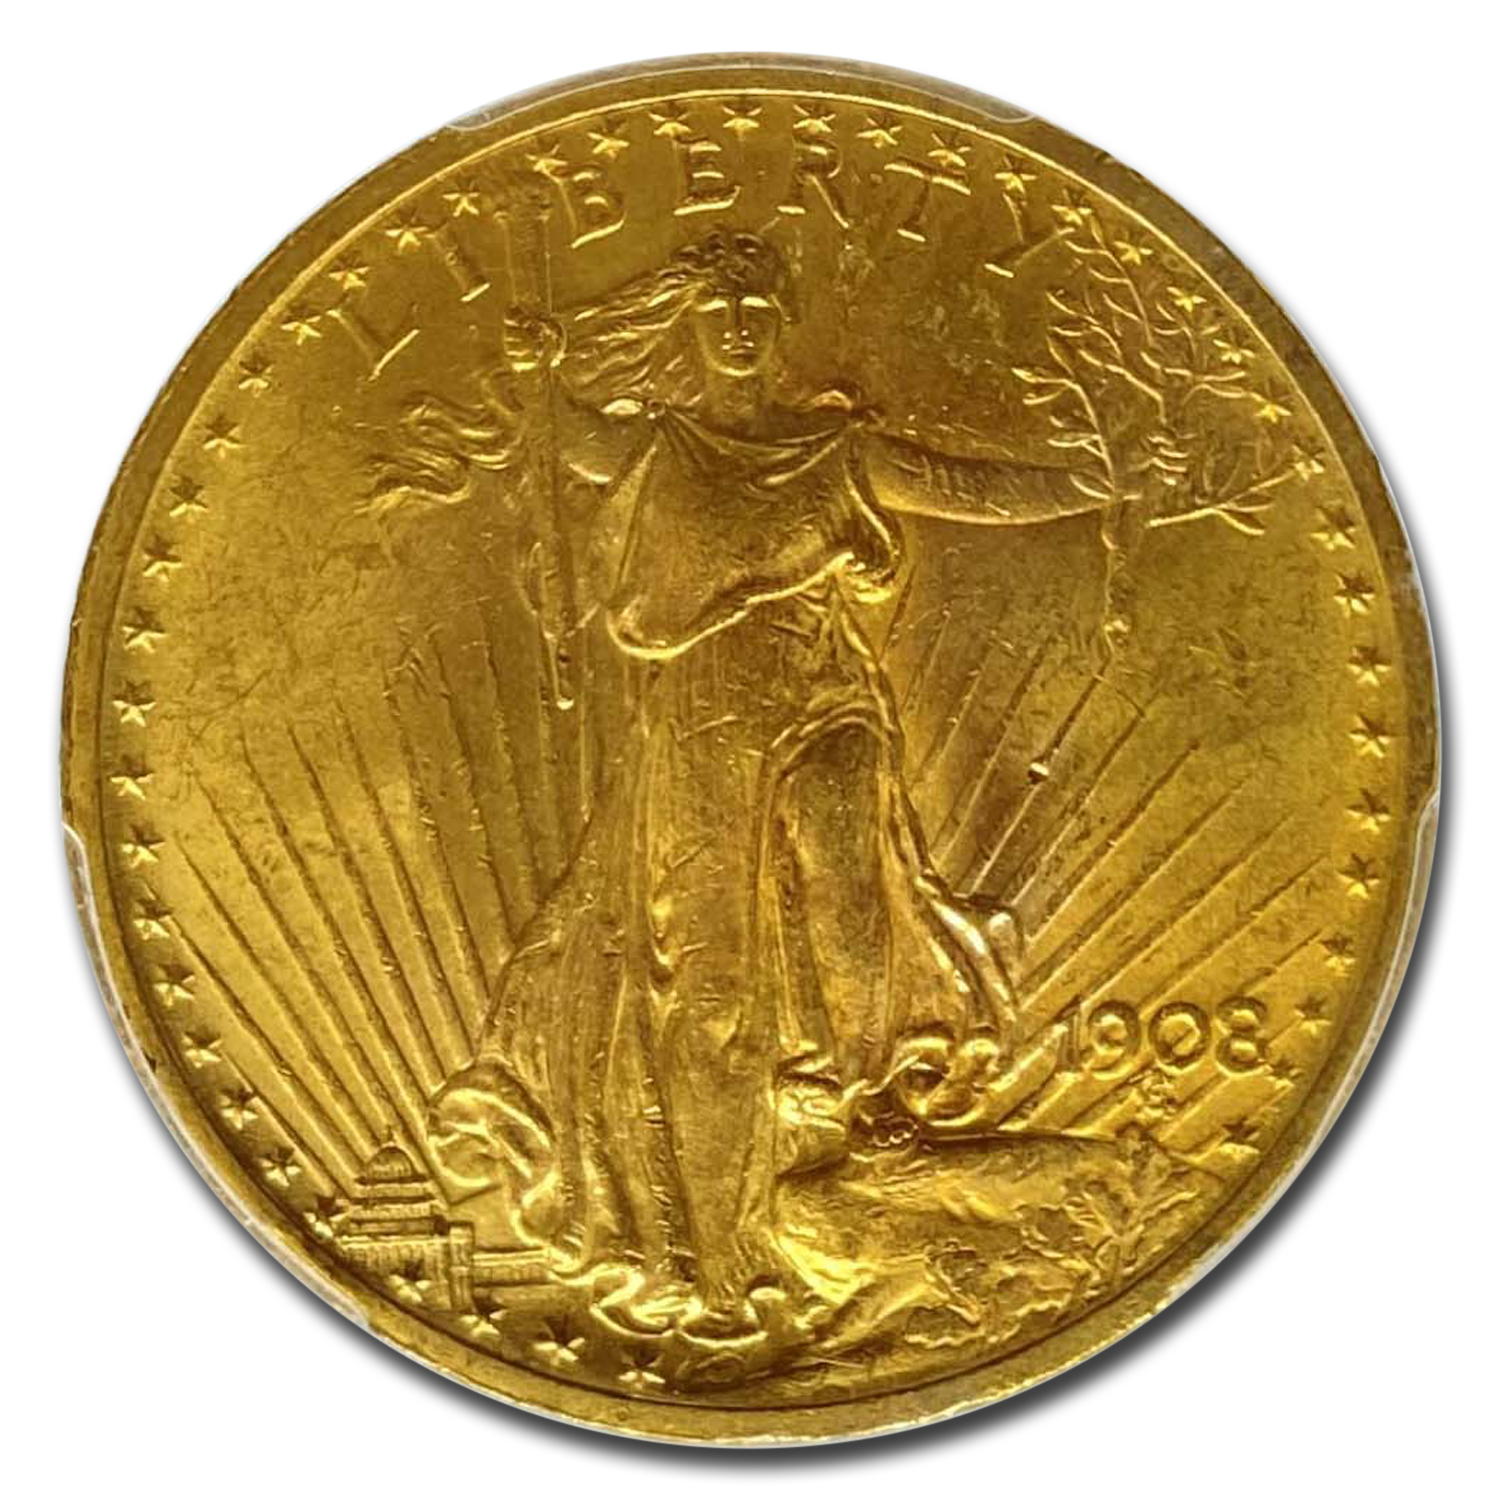 1908 $20 St. Gaudens Gold w/Motto MS-64 PCGS